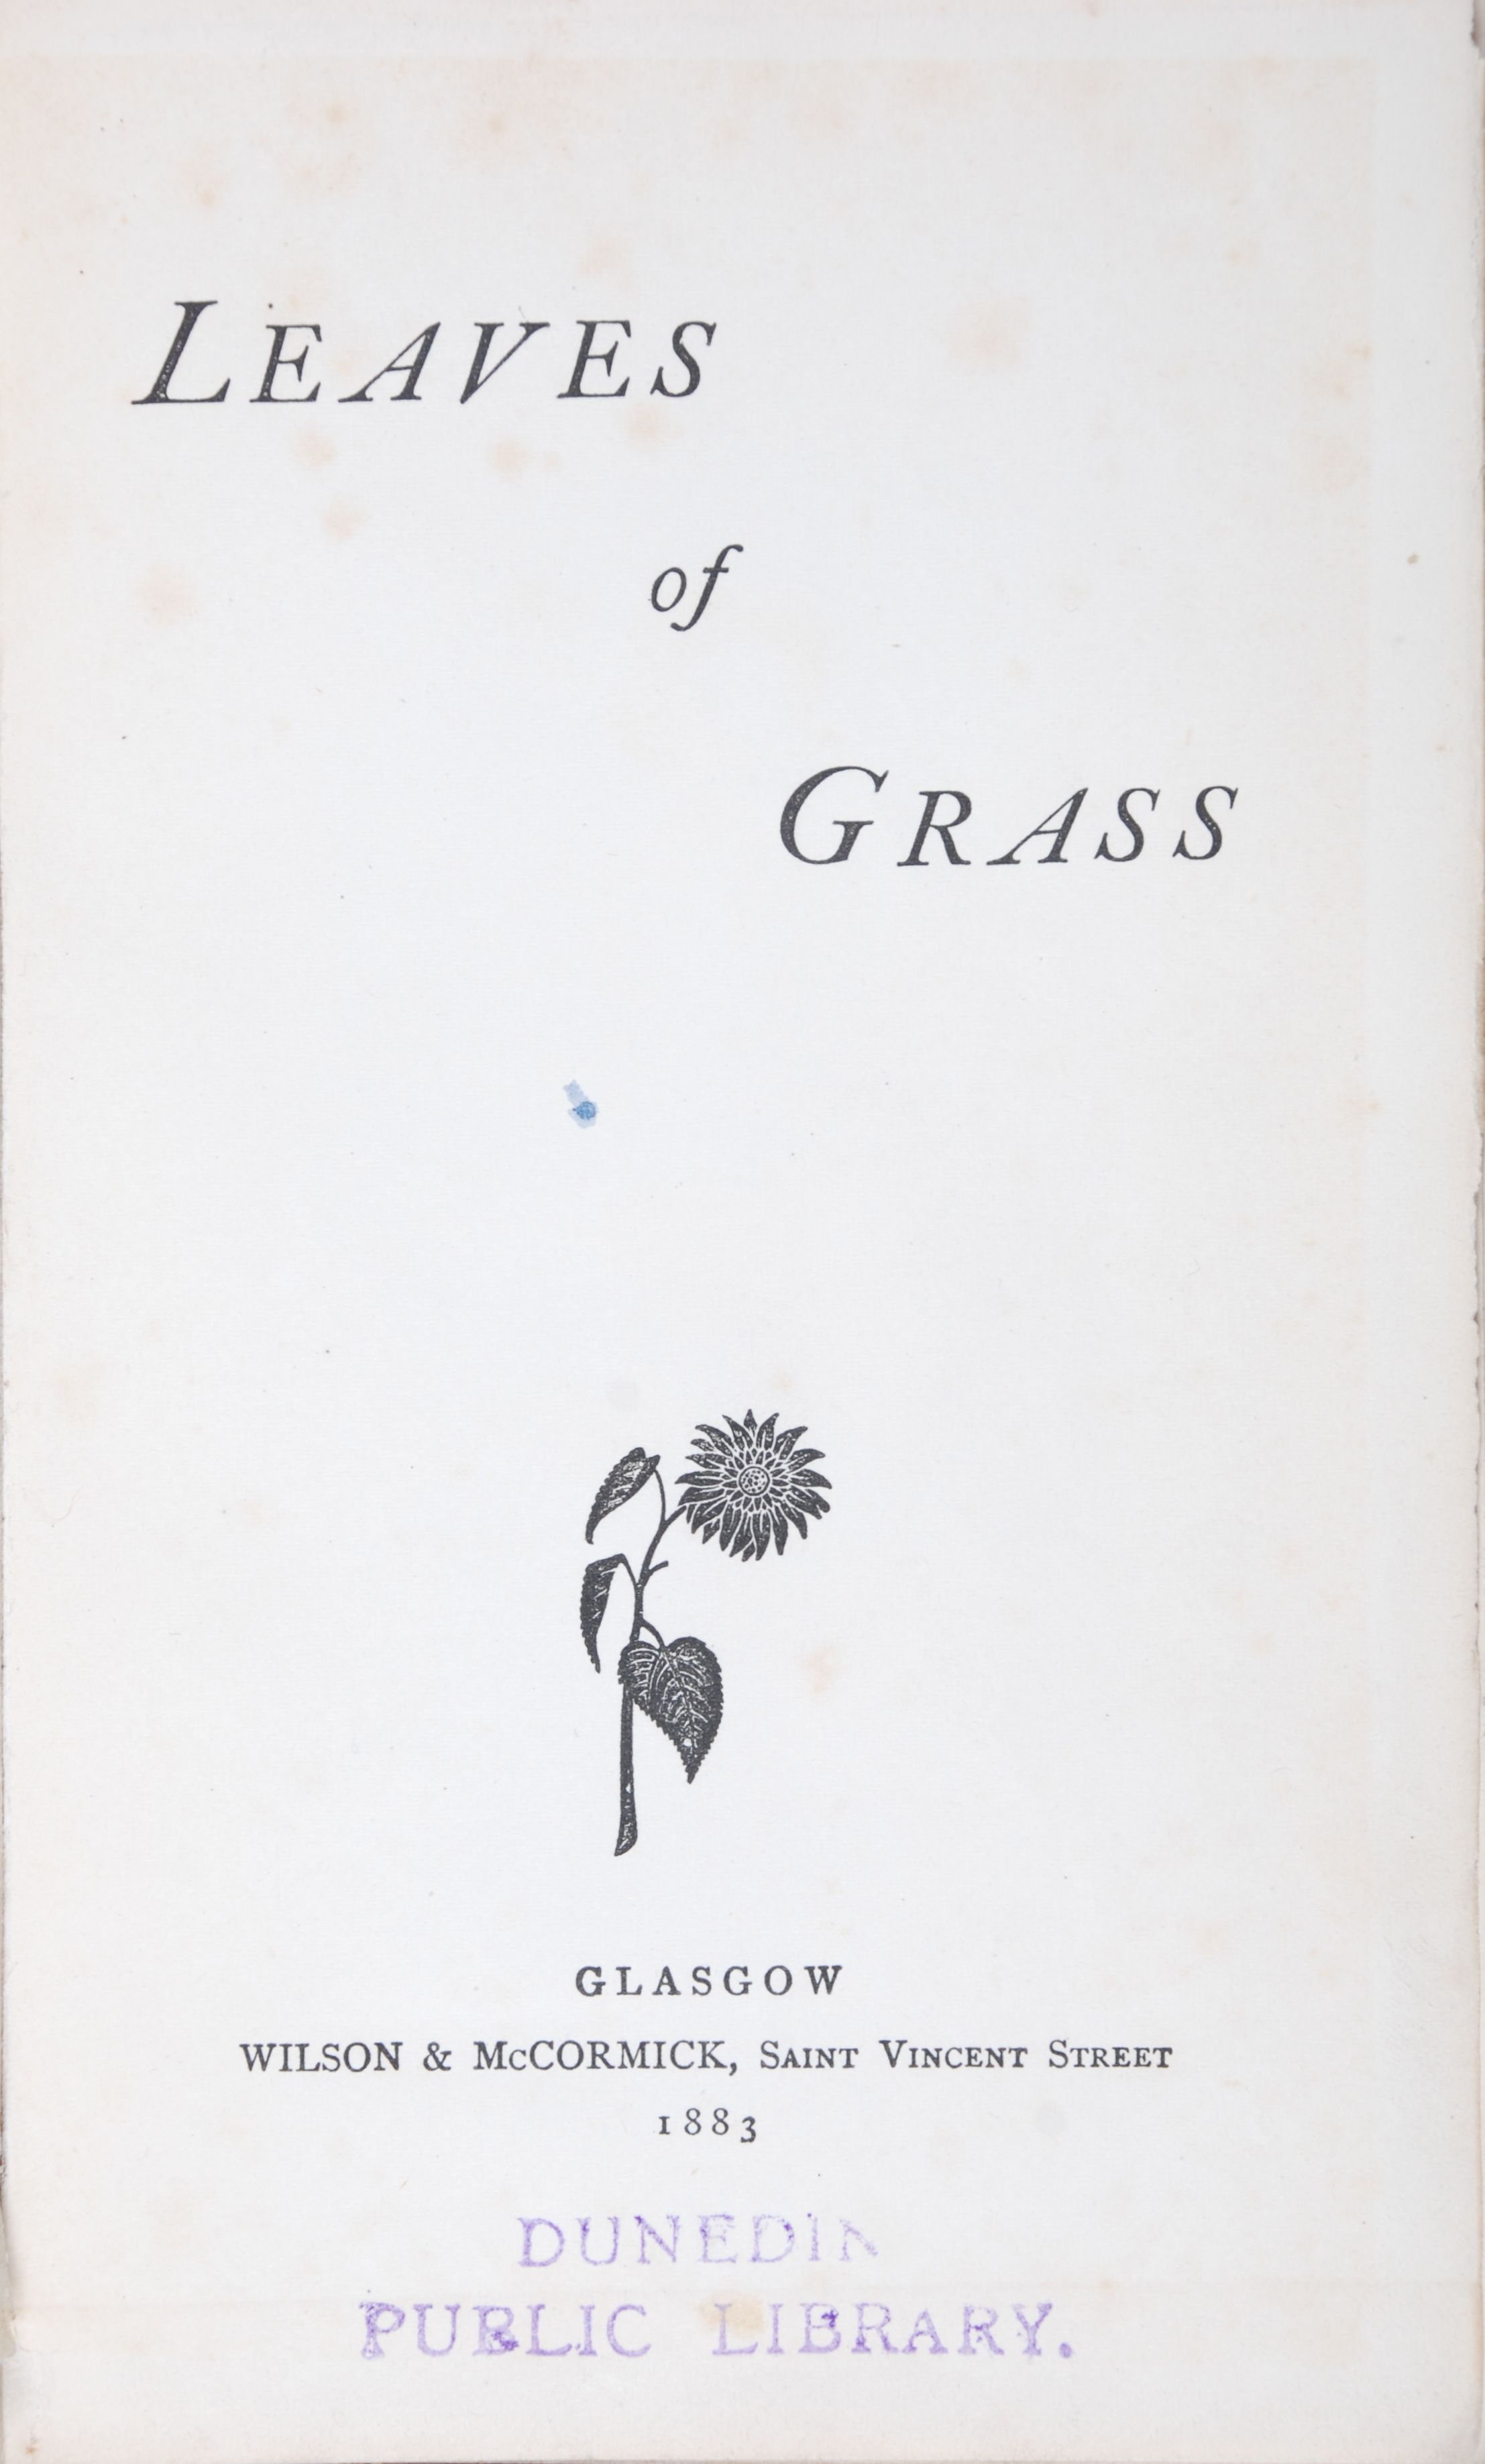 Walt Whitman. Leaves of Grass. Glasgow: Wilson & McCormick, 1883.